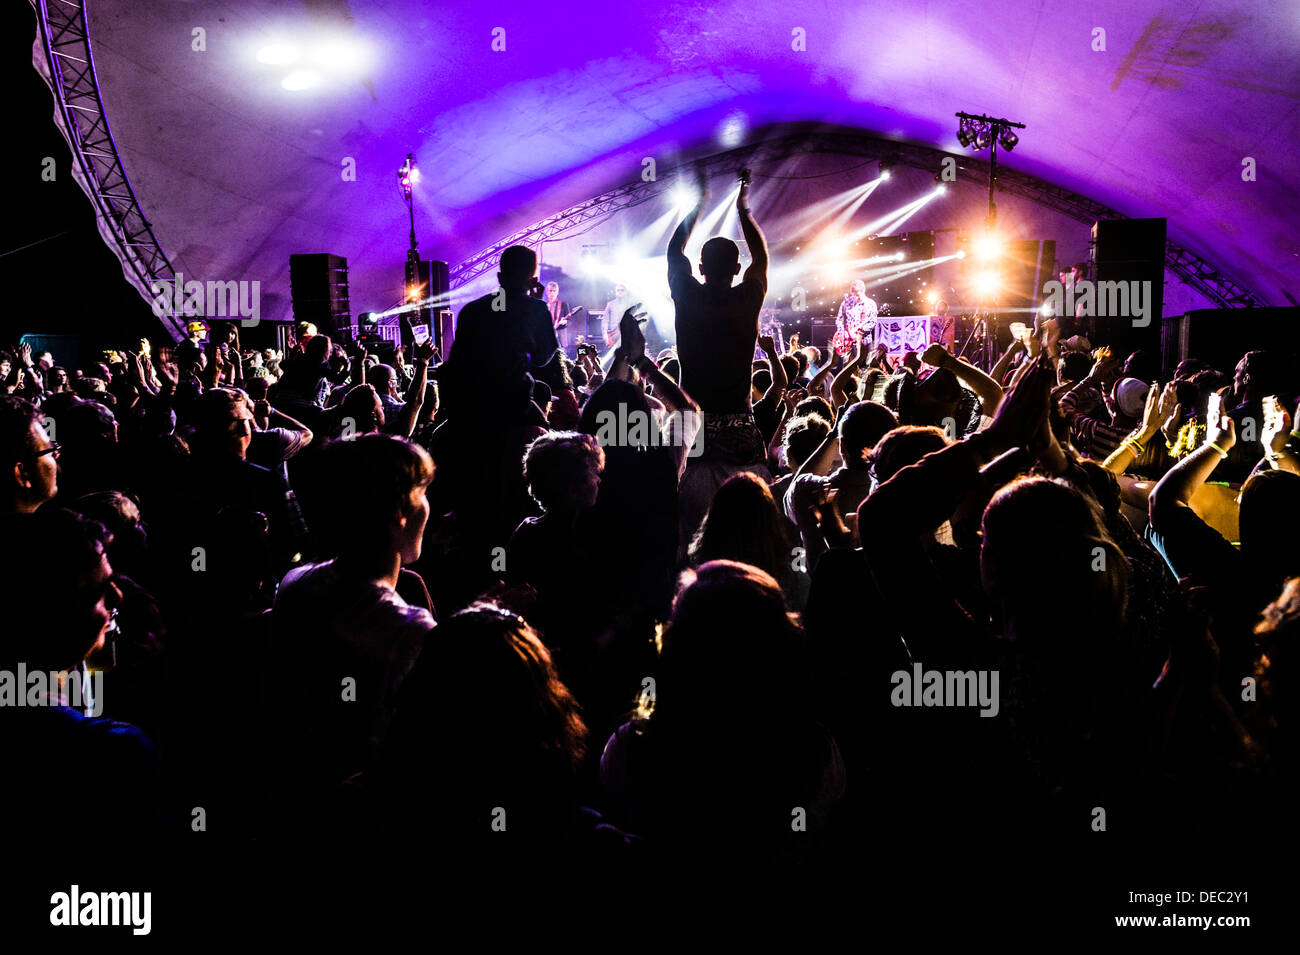 Crowds of people enjoying the music at the Big Tribute Music Festival, August Bank Holiday Weekend, summer Wales UK - Stock Image